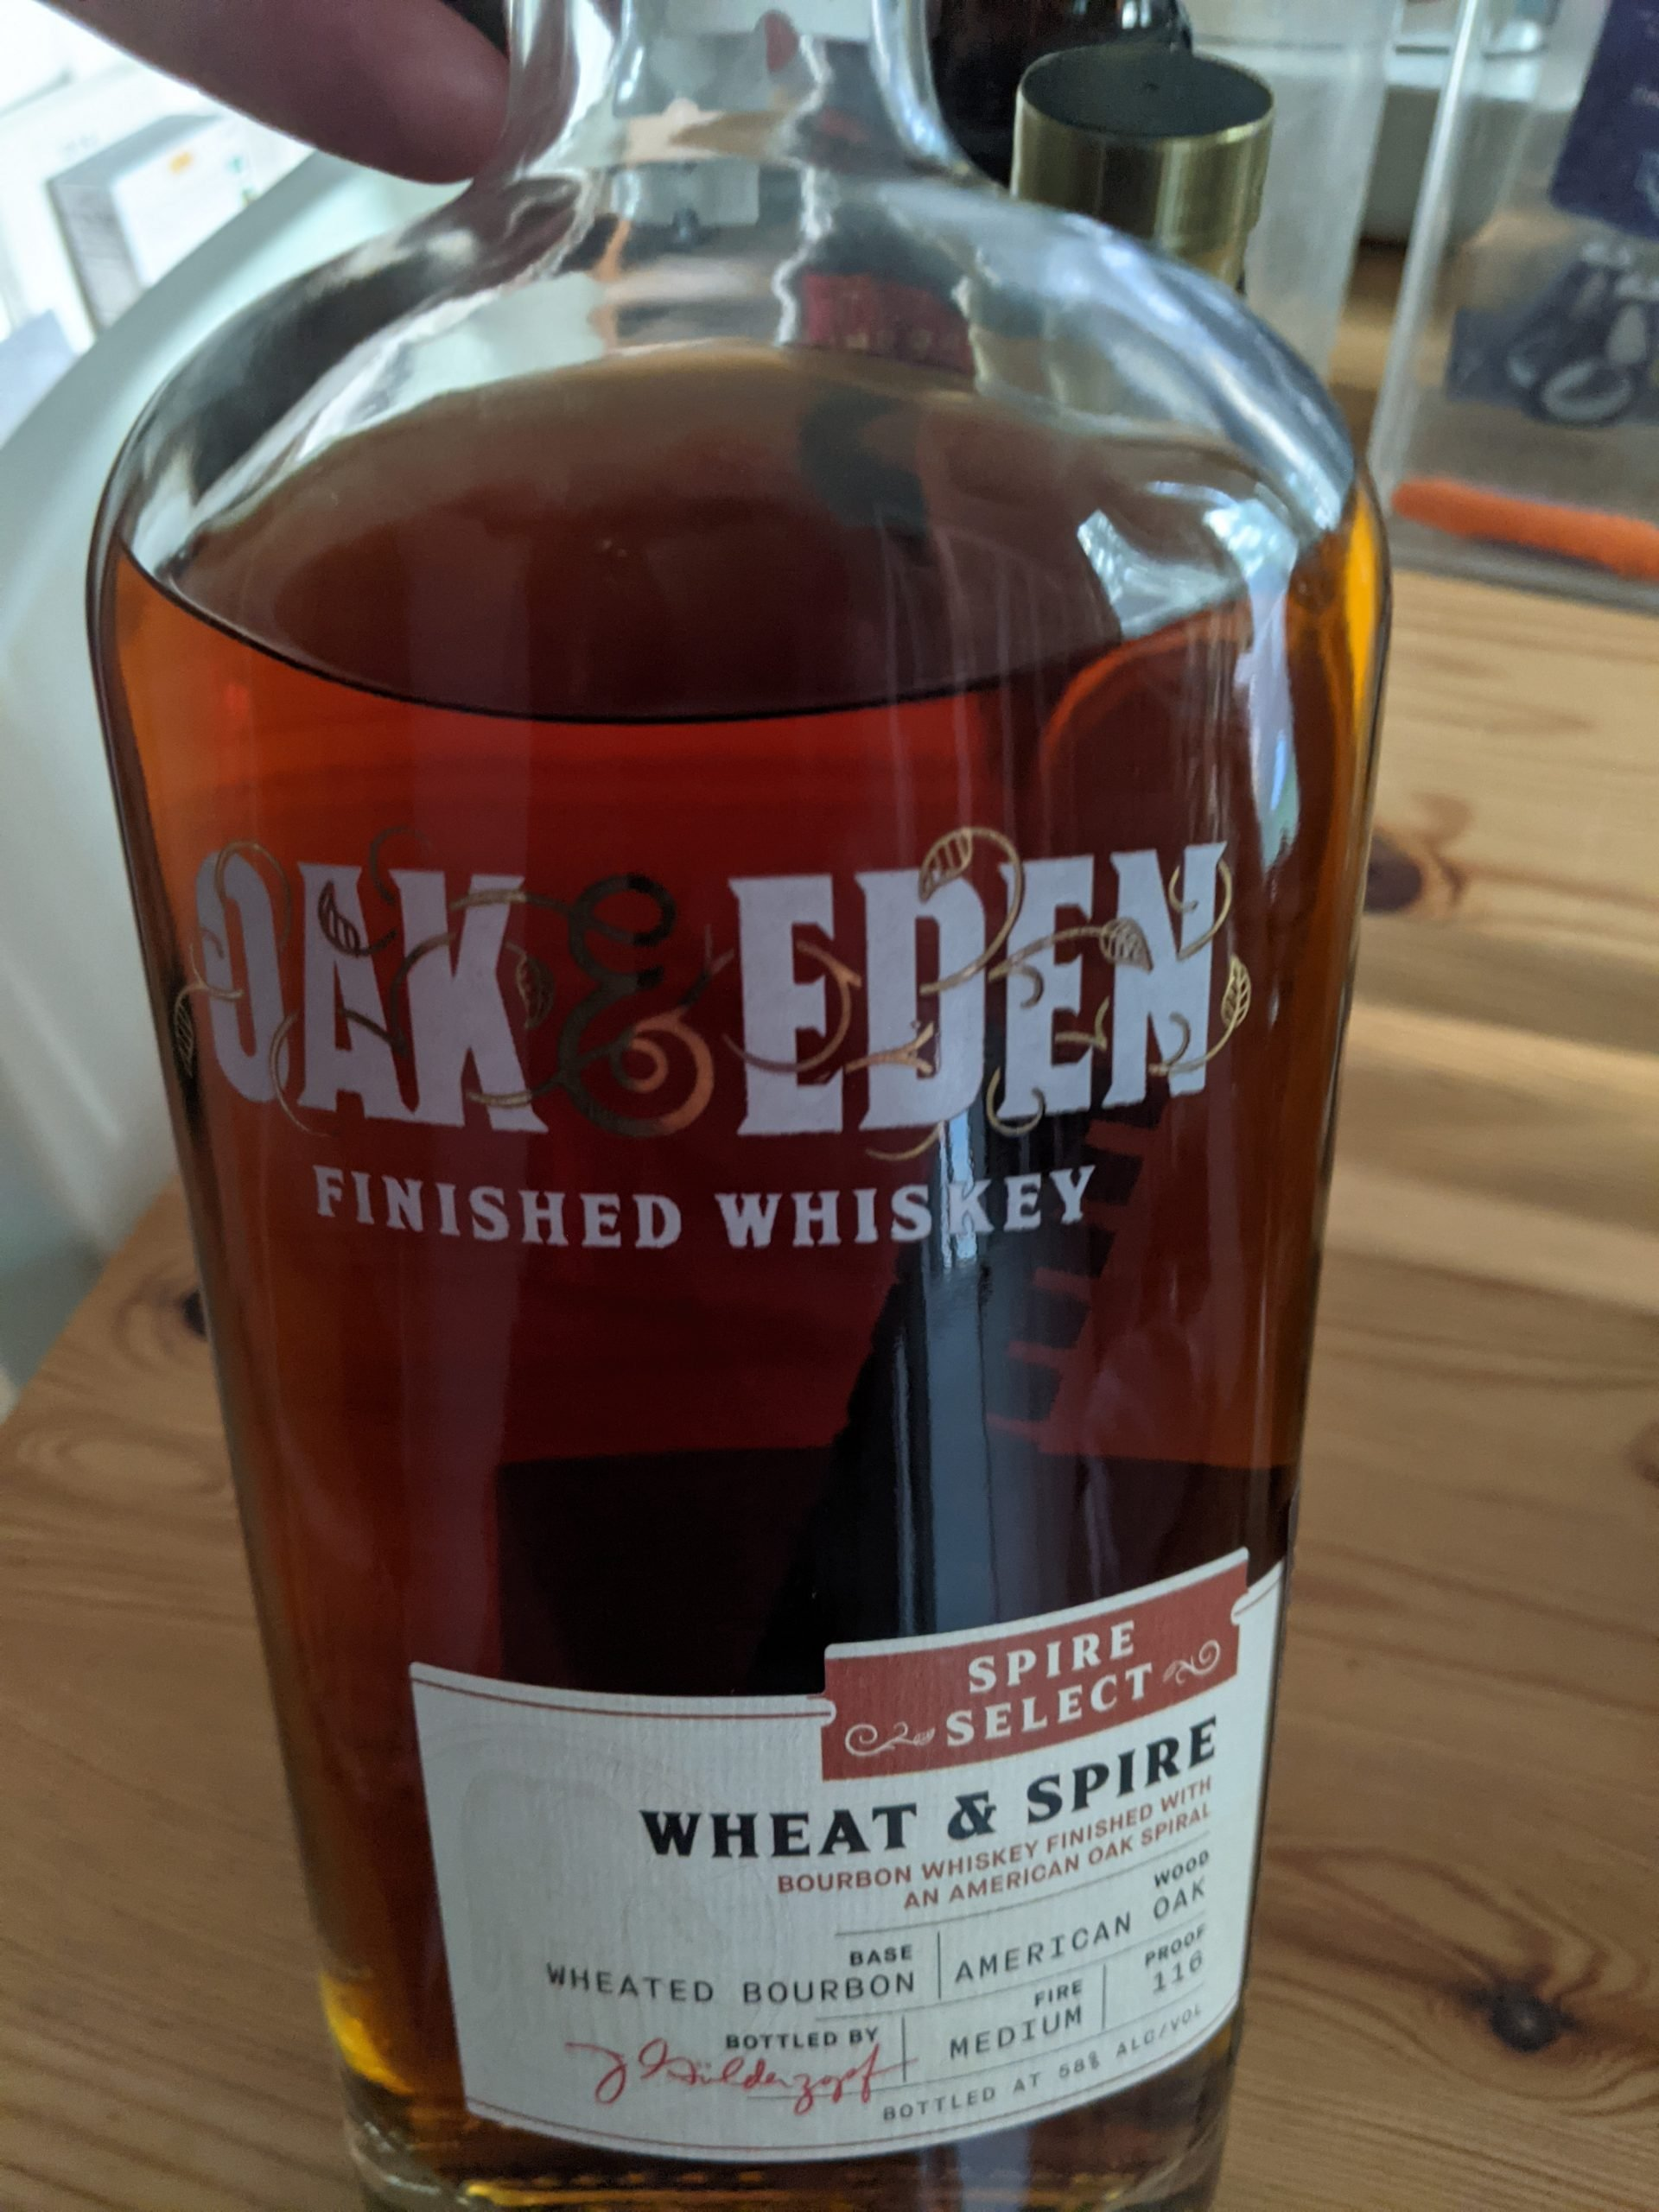 Oak and Eden Wheat and Spire